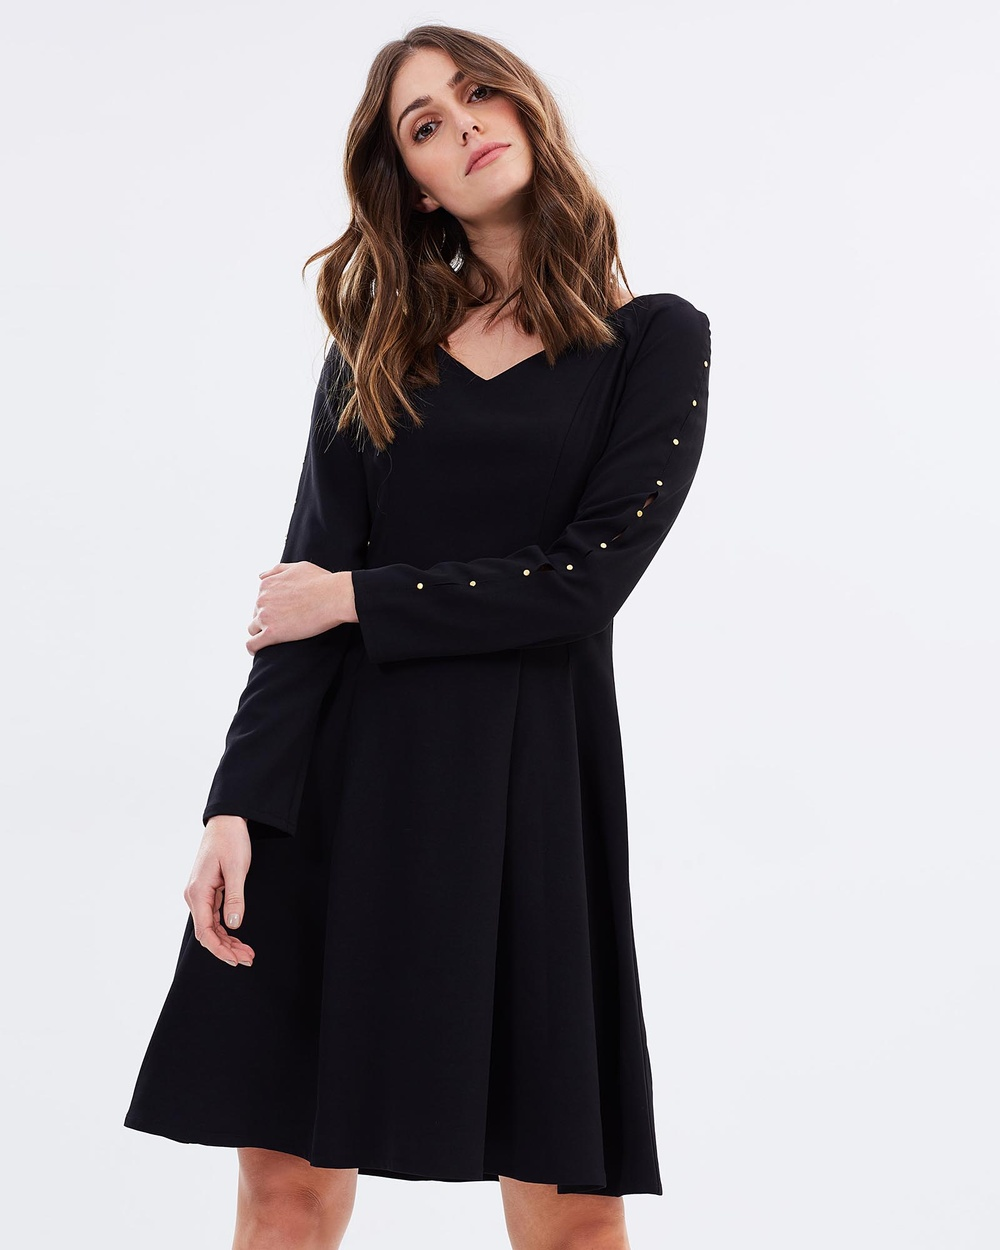 Alabaster The Label Miss Independent Dresses Black Miss Independent